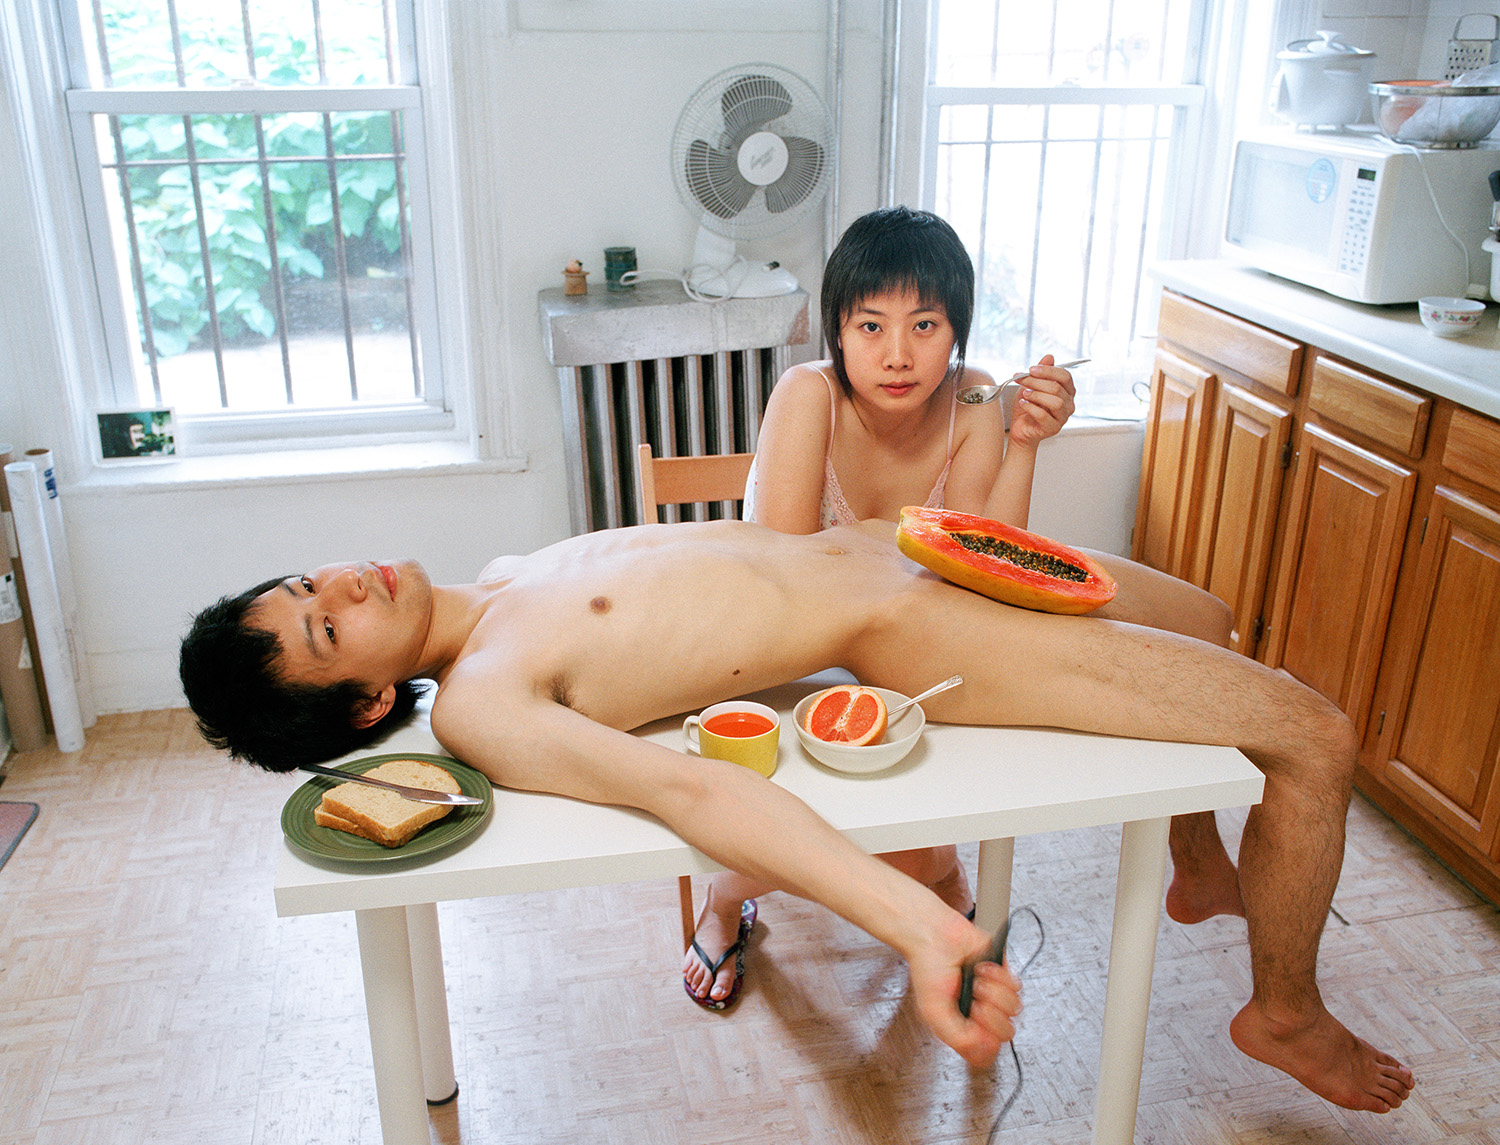 Pixy Liao,  Start your day with a good breakfast together , from the  Experimental Relationship  series, 2009. Courtesy of the artist.